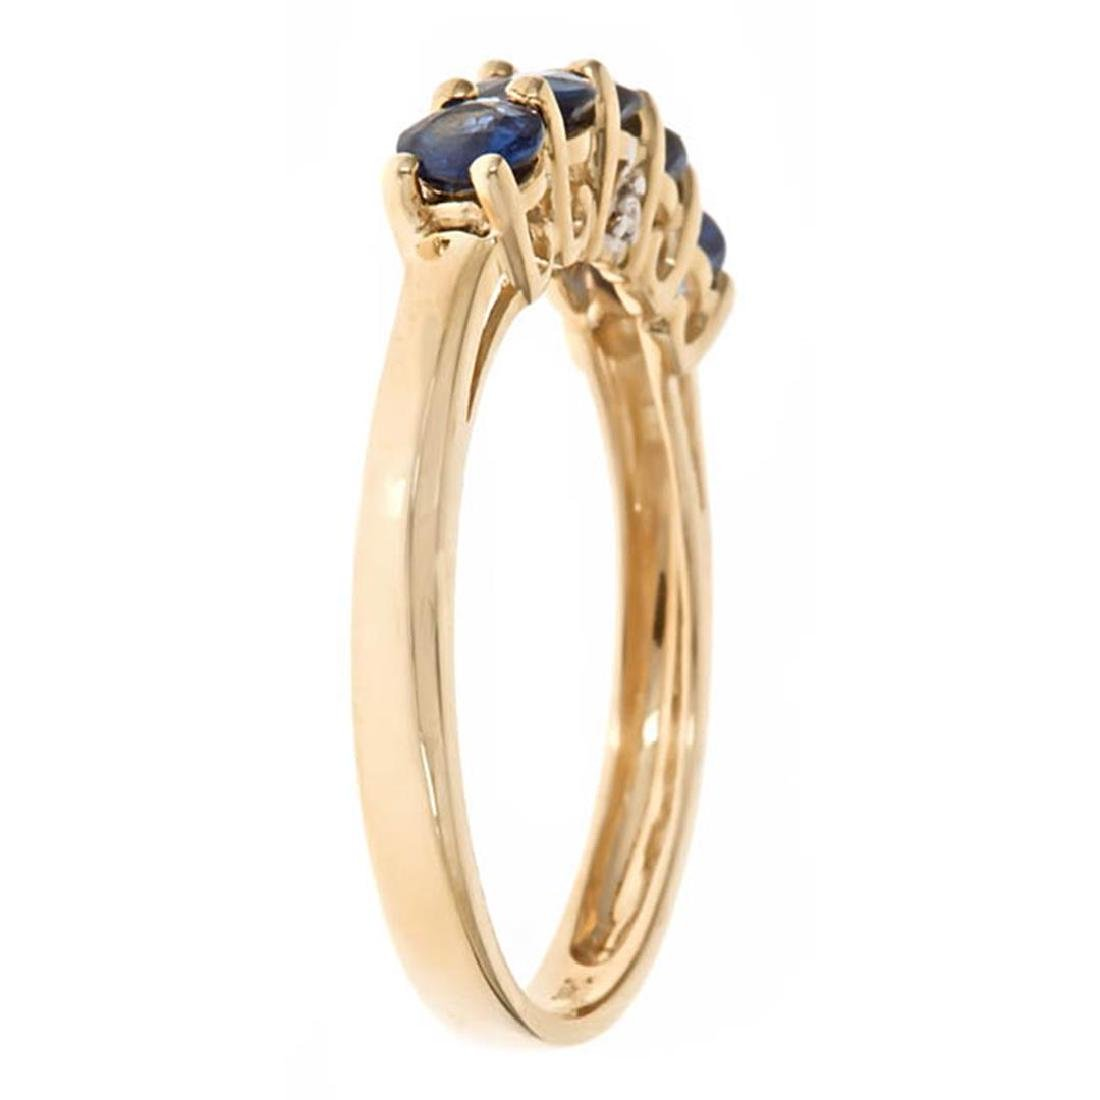 1.04 ctw Sapphire and Diamond Ring - 14KT Yellow Gold - 2